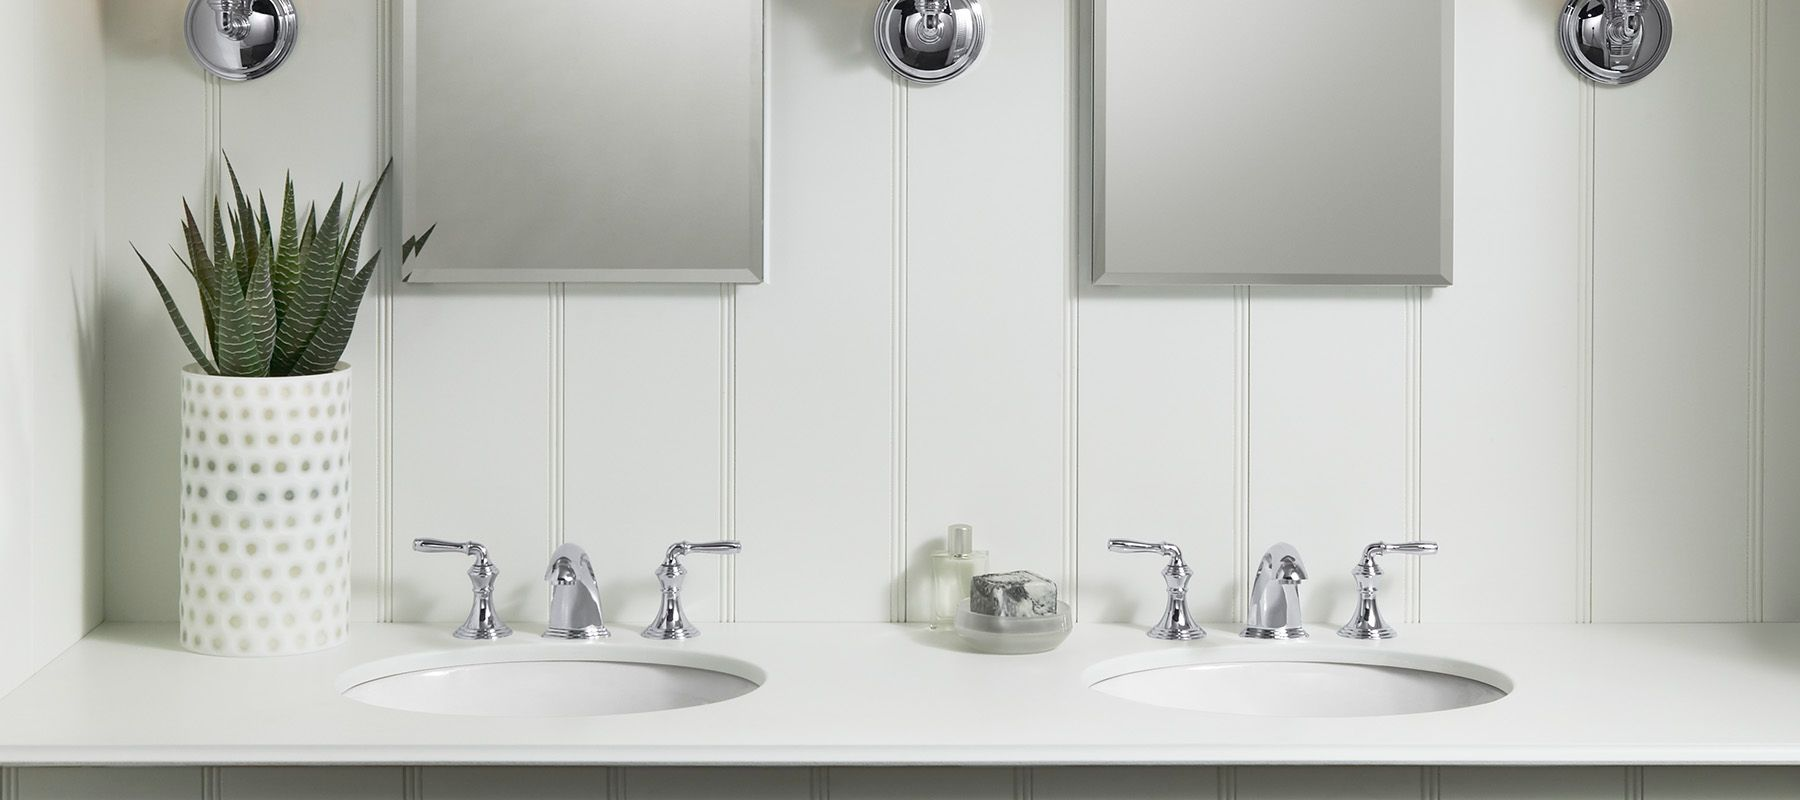 Undermount Bathroom Sink under-mount bathroom sinks | bathroom | kohler